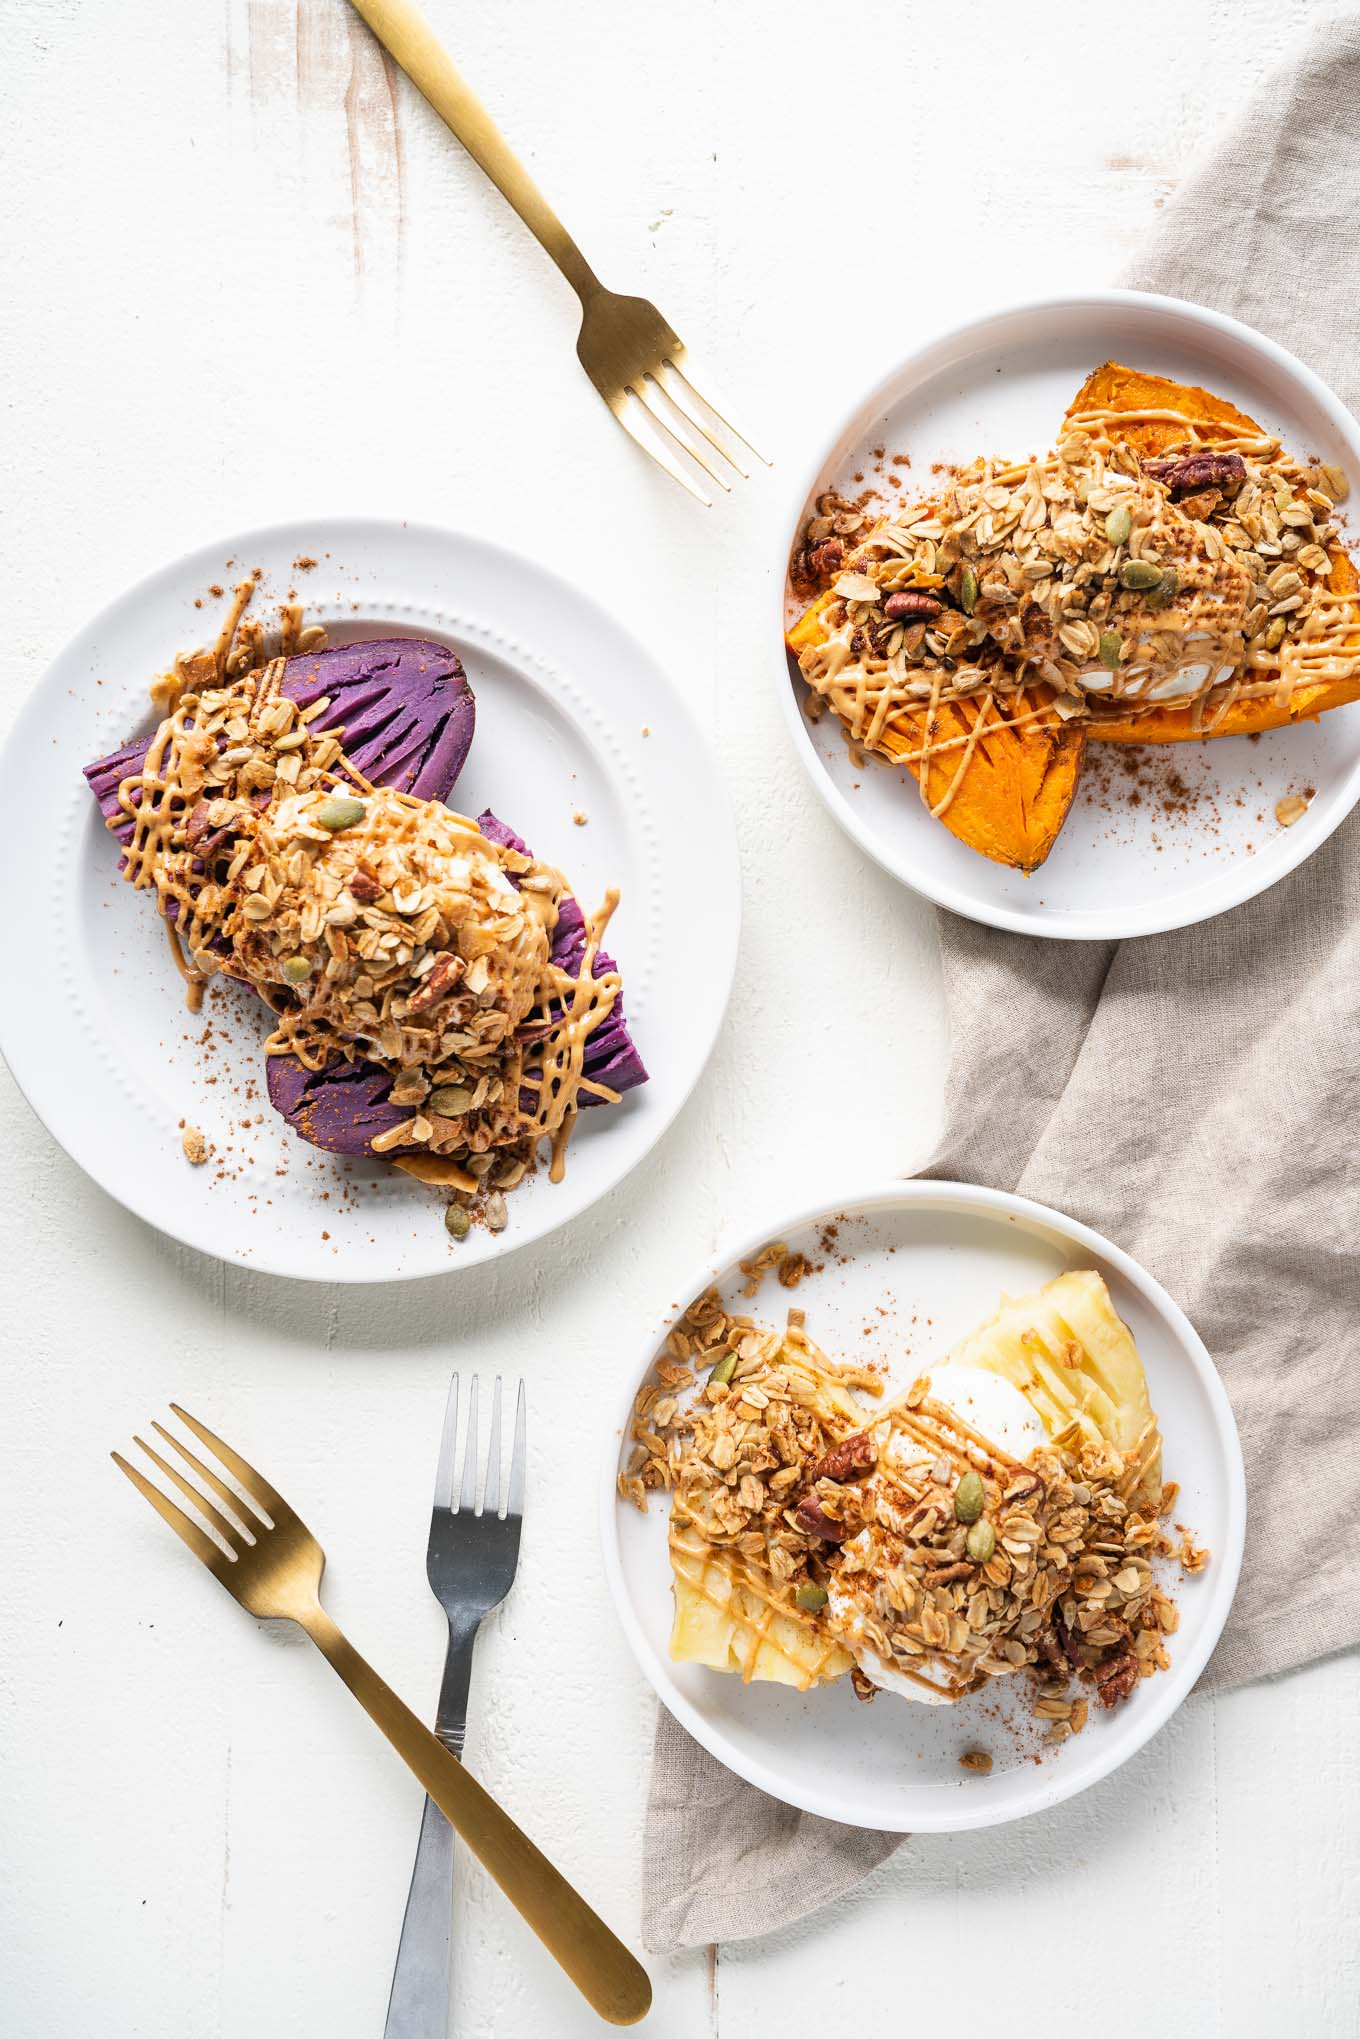 Dessert Stuffed Sweet Potatoes Three Plates with Forks